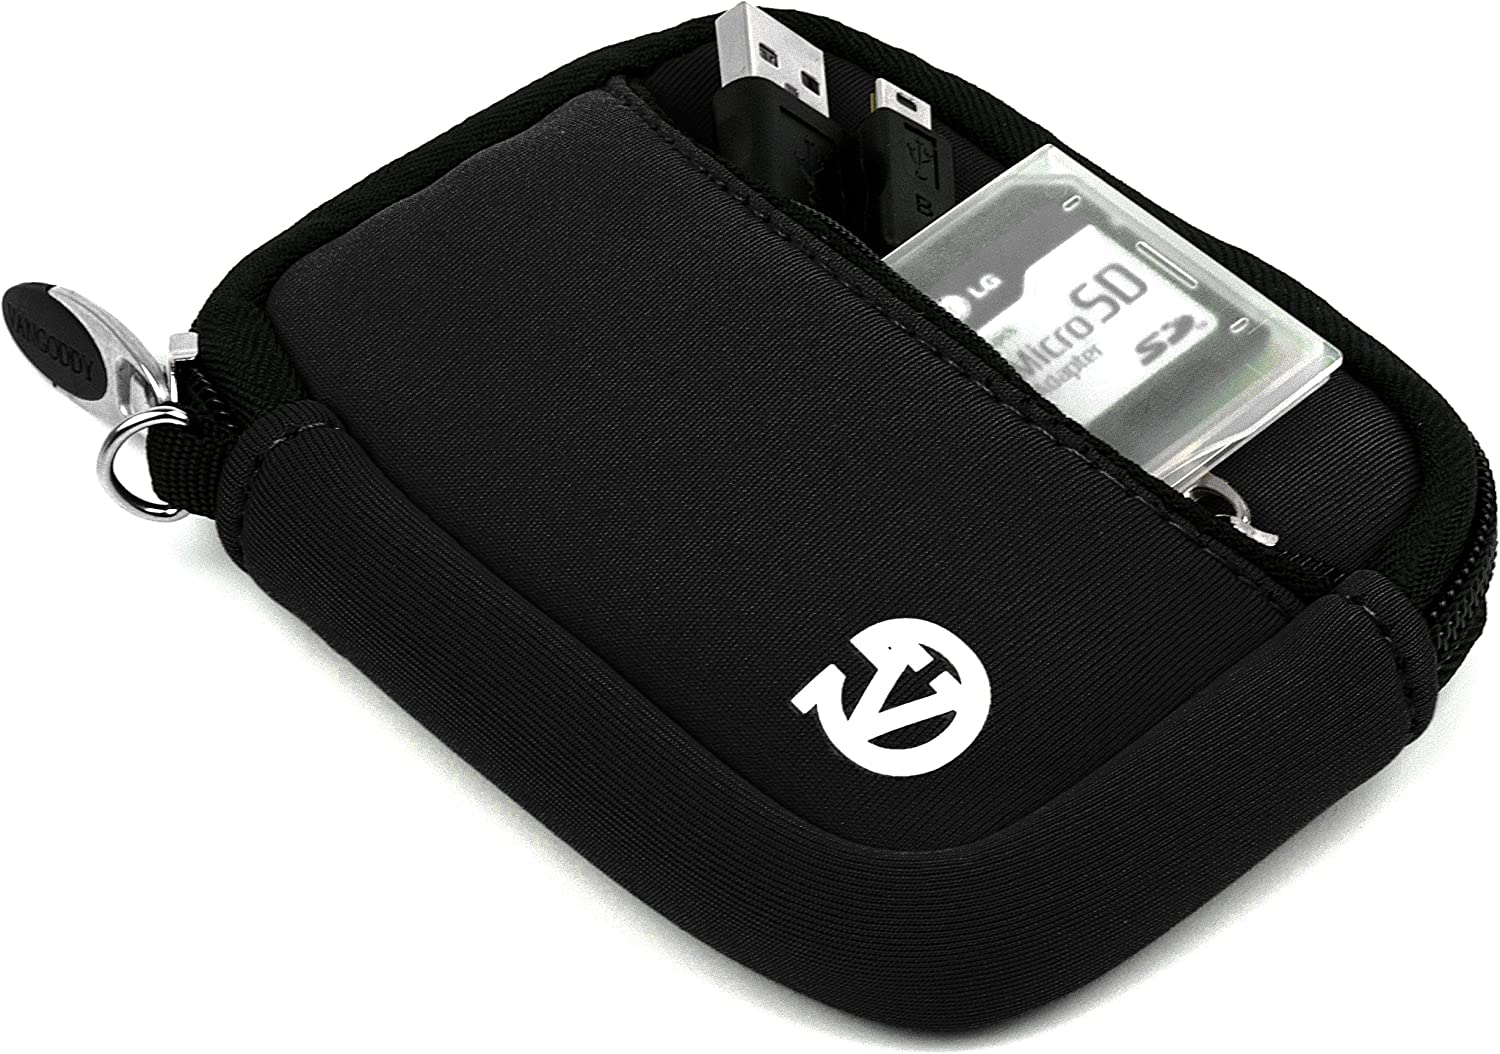 Black VanGoddy Mini Glove Sleeve Pouch Case for Sony Cyber Shot DSC Series Digital Cameras